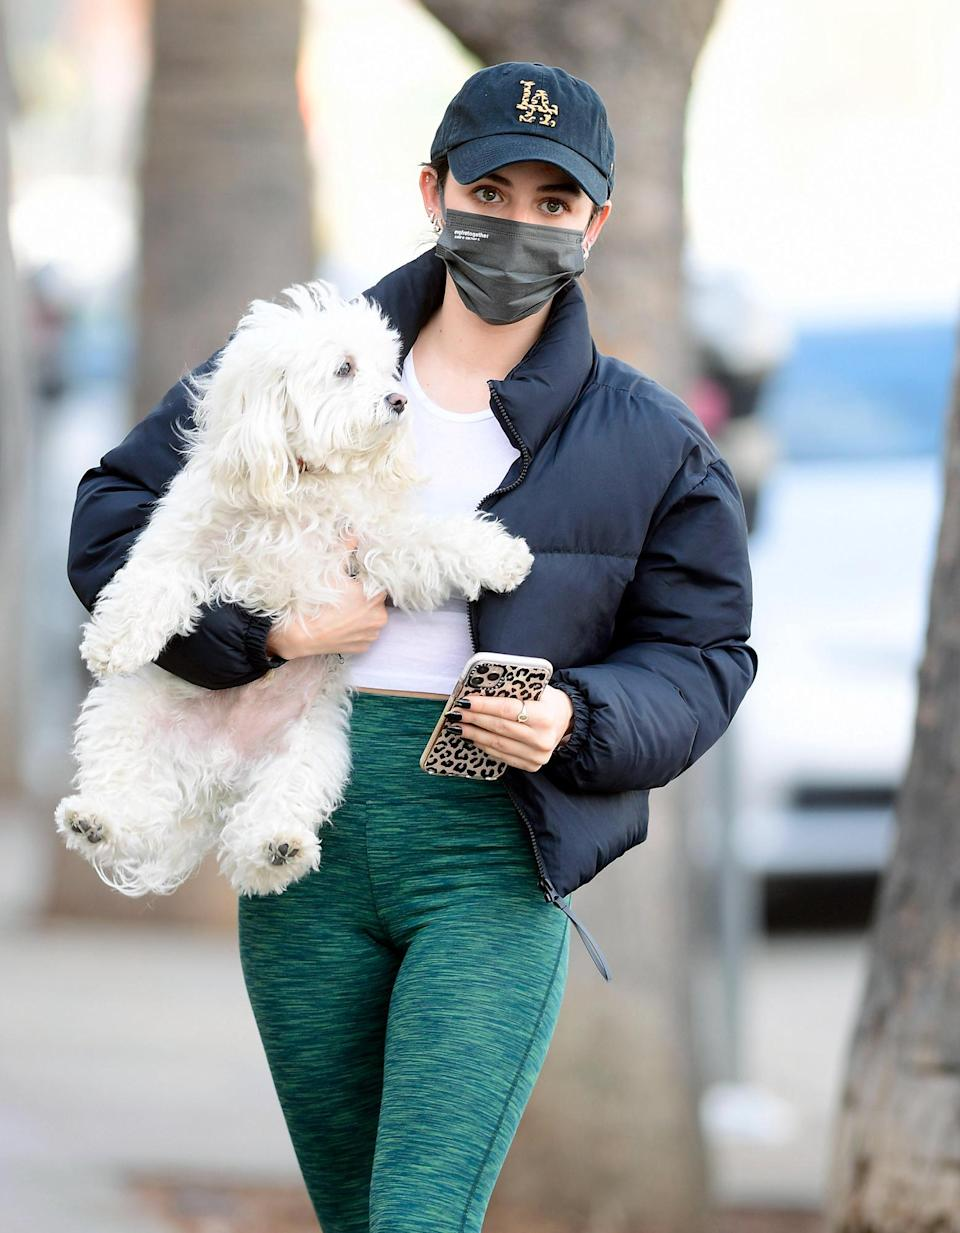 <p>Lucy Hale steps out in L.A. on Tuesday, wearing a baseball cap, leggings and a puffer coat, as her dog Elvis comes along for the ride.</p>